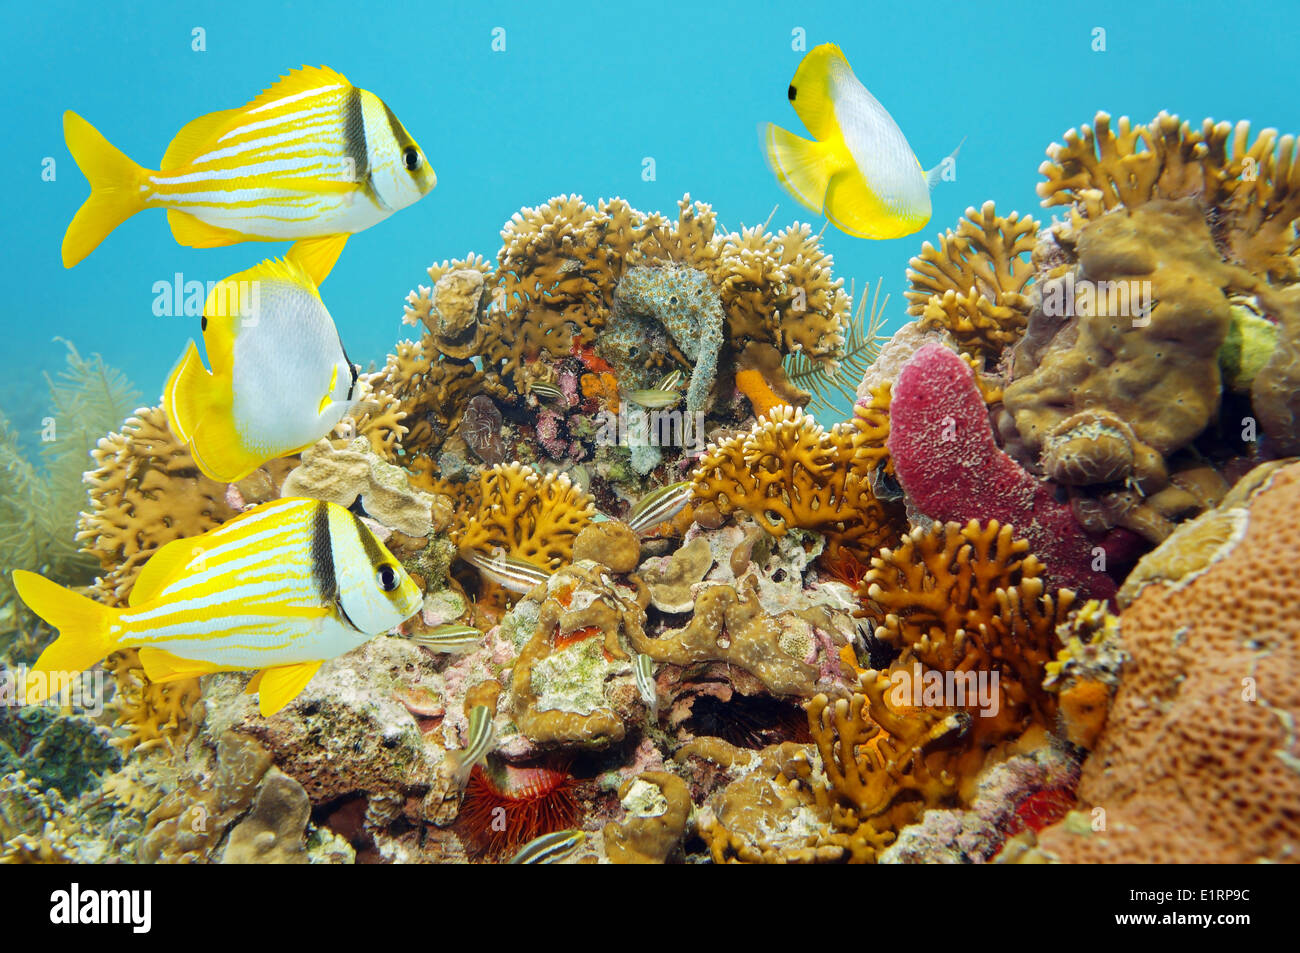 Coral reef scene with tropical fish - Stock Image